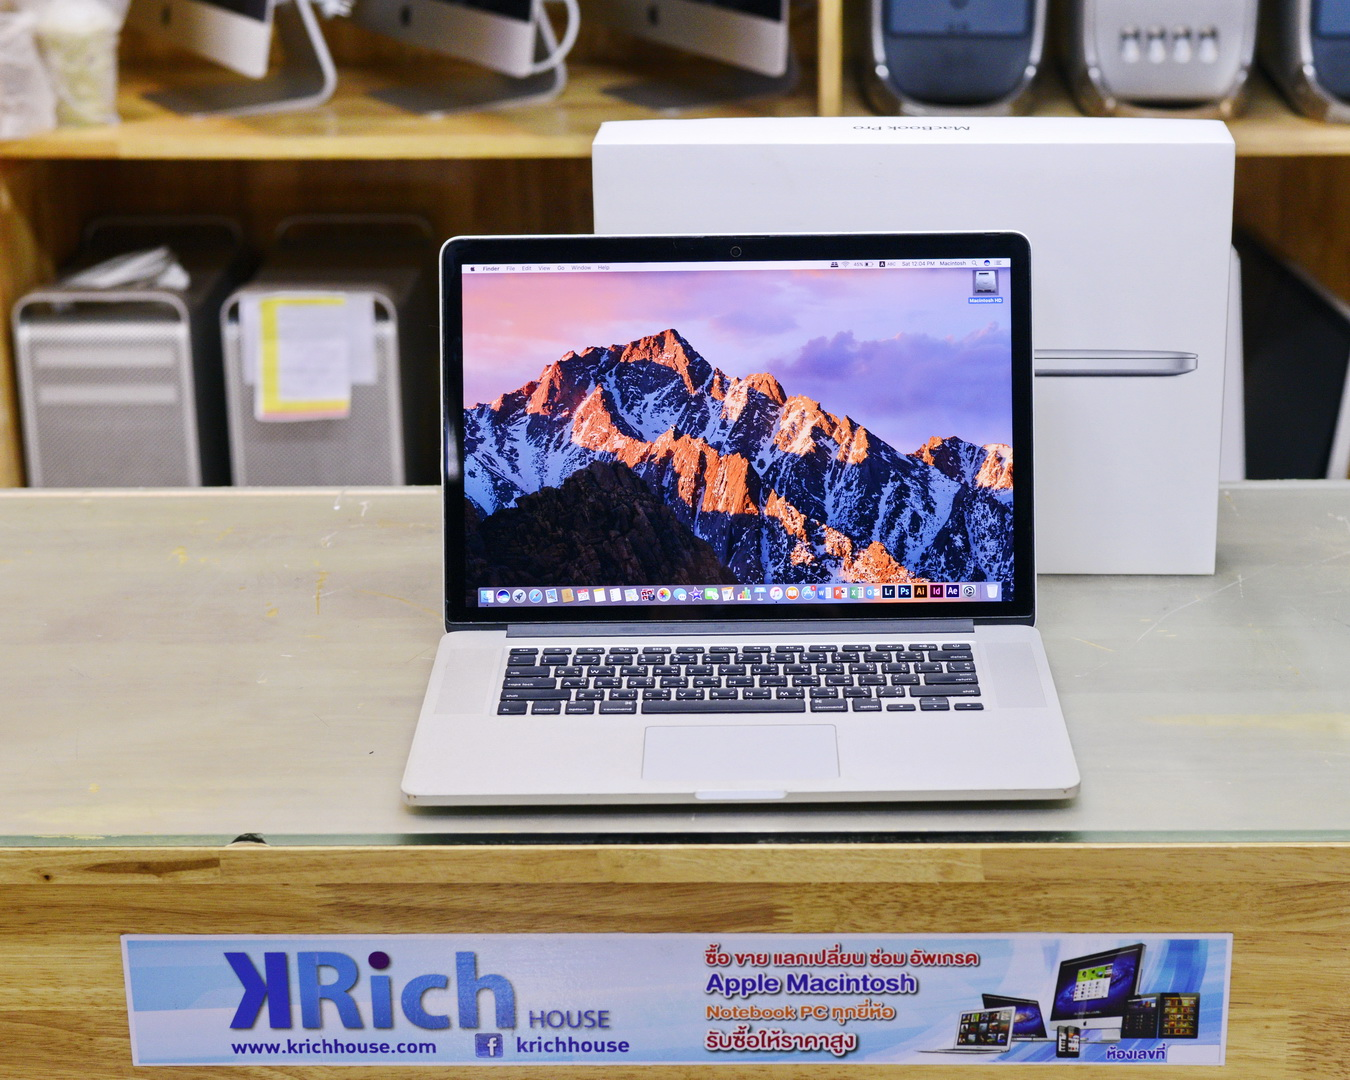 TOP MODEL - MacBook Pro (Retina, 15-inch, Early 2013) Quad-Core i7 2.7GHz RAM 16GB SSD 512GB Nvidia GeForce GT 650M 1GB - FullBox